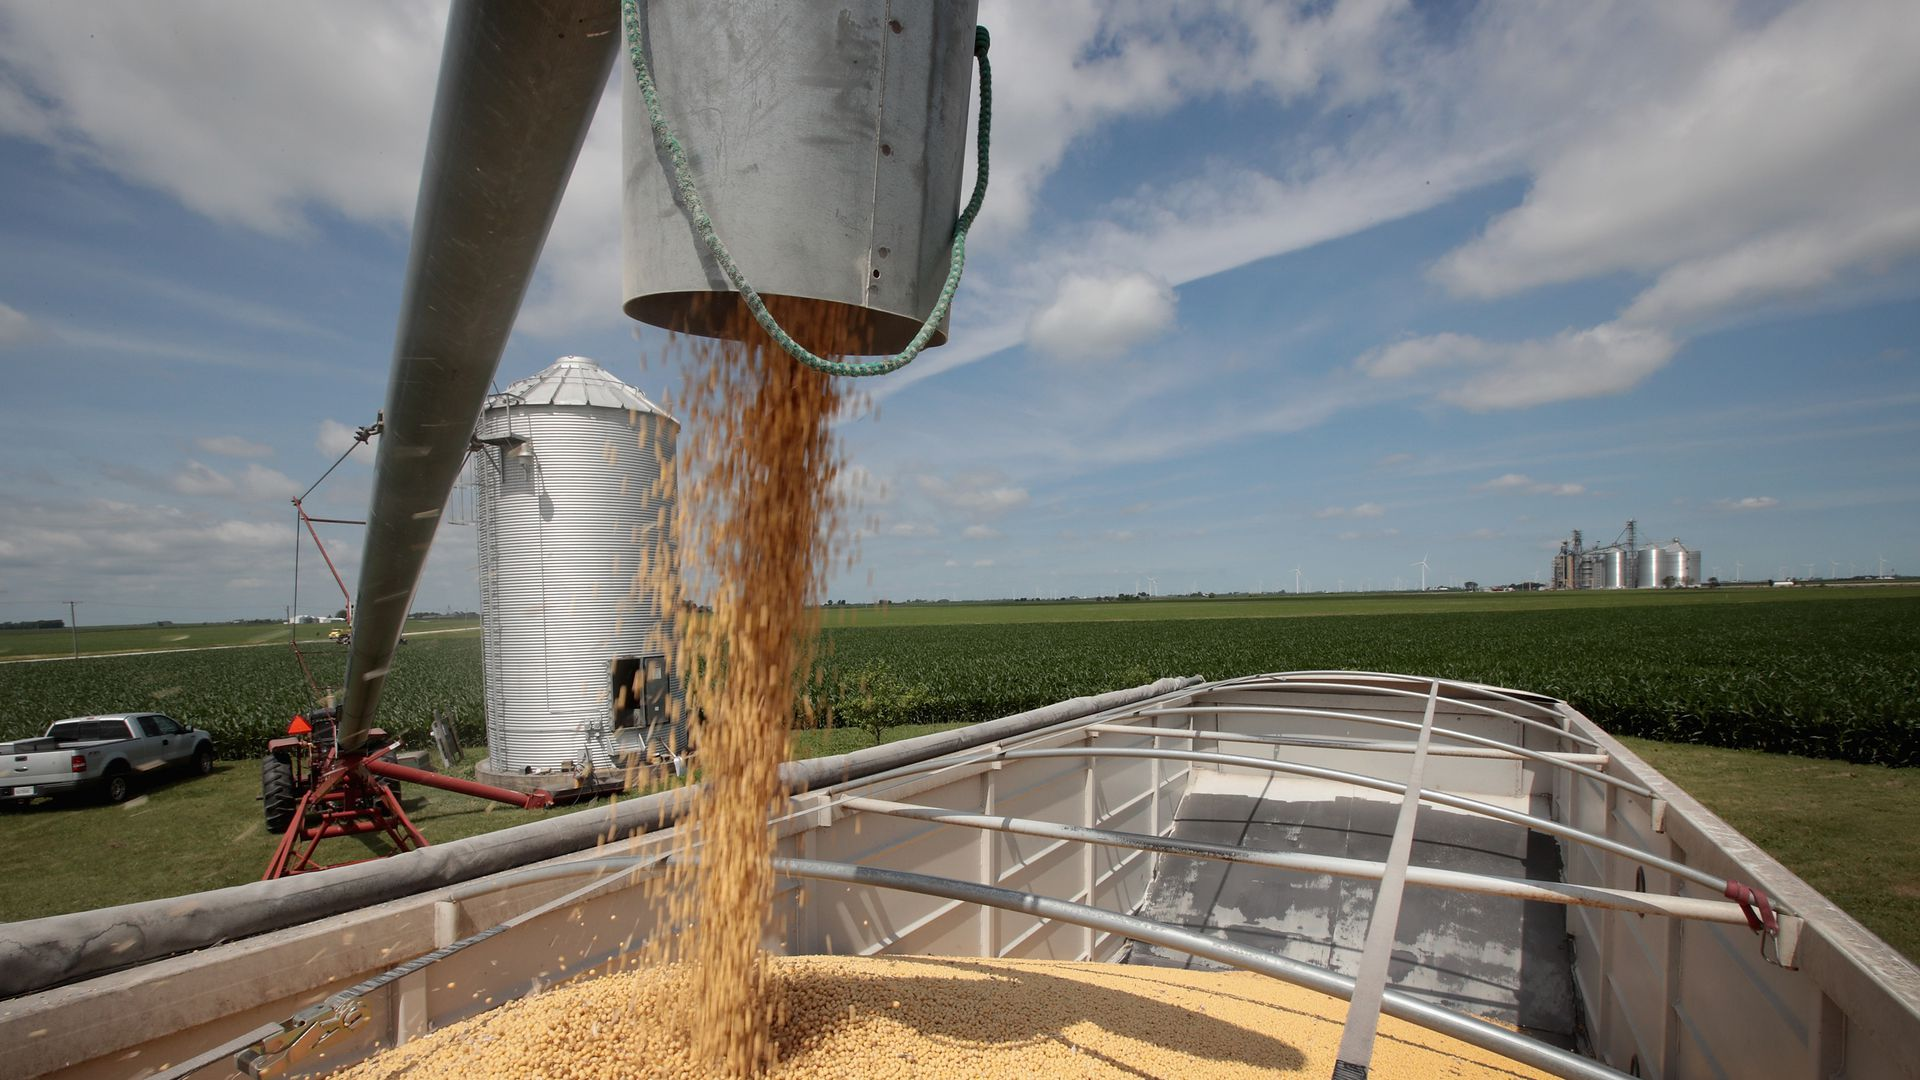 A bucket dumps soybeans into a truck